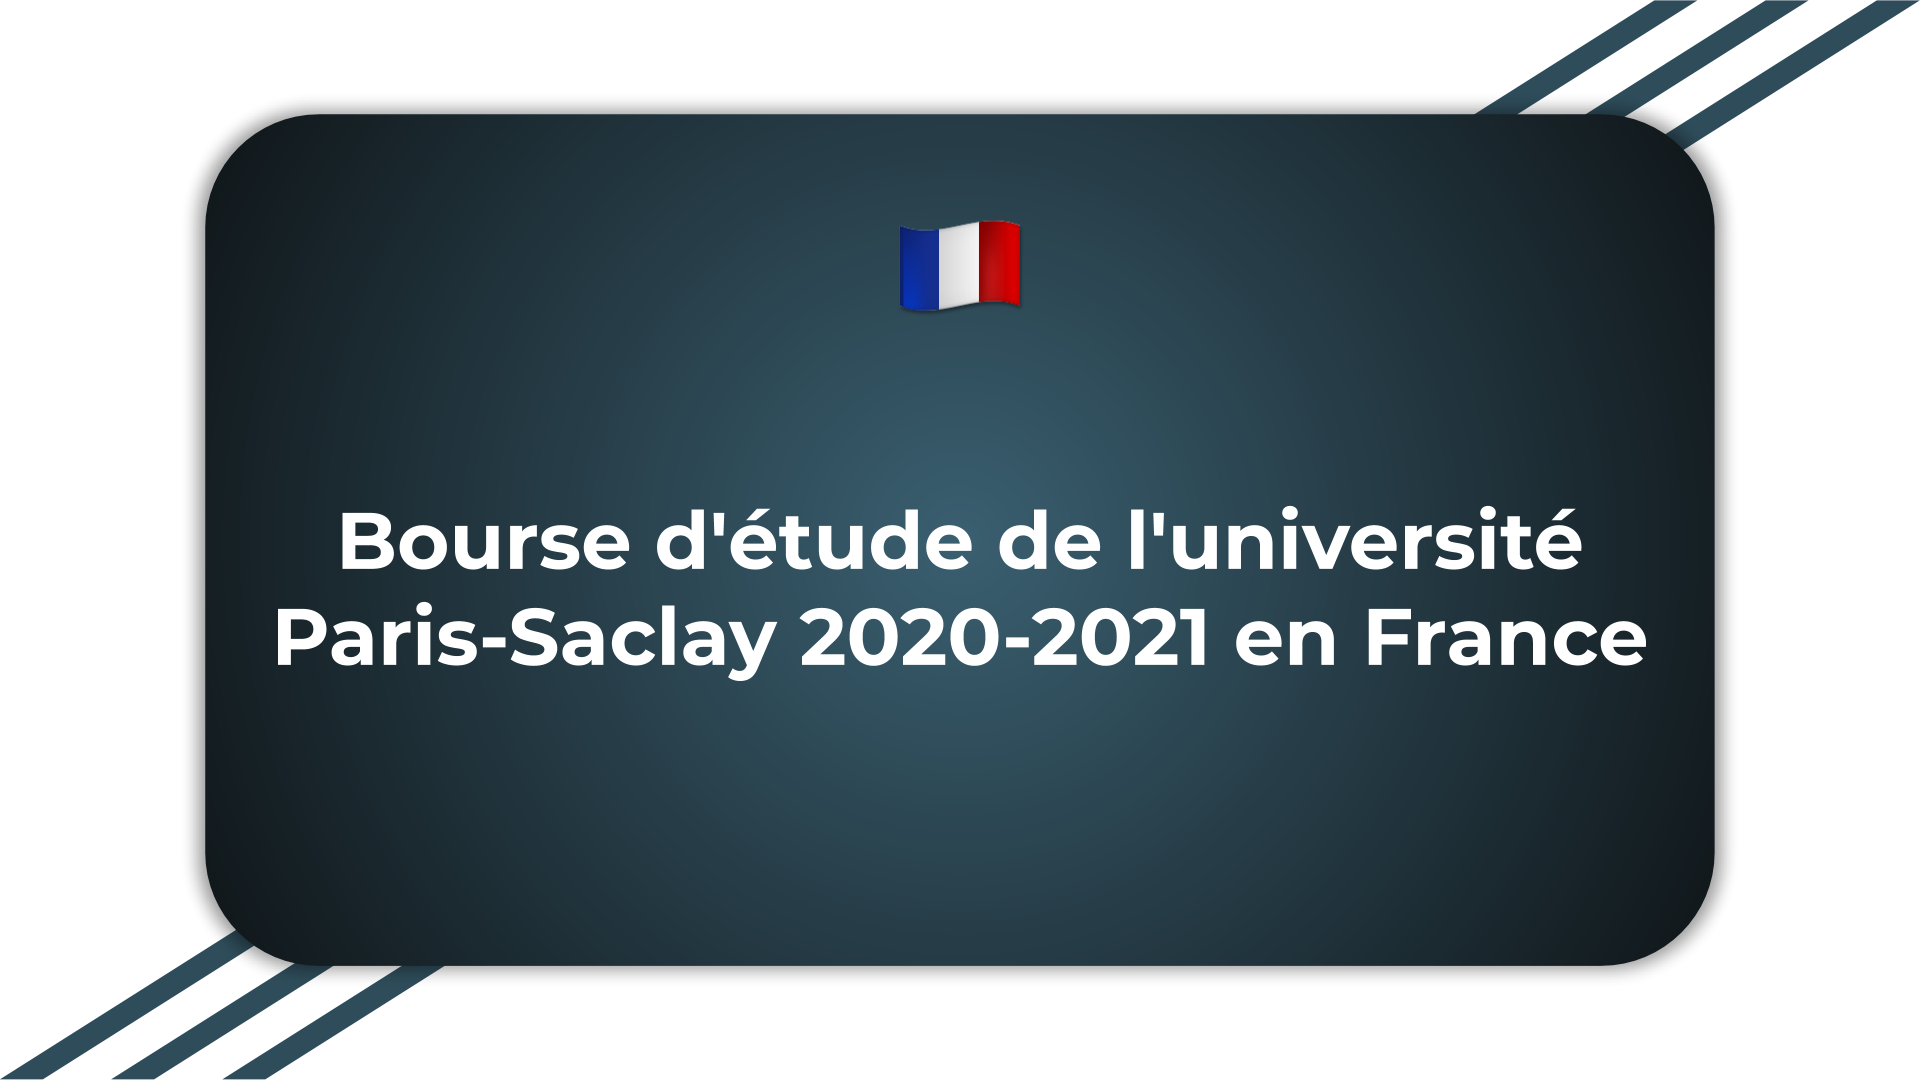 Bourse d'étude de l'université Paris-Saclay